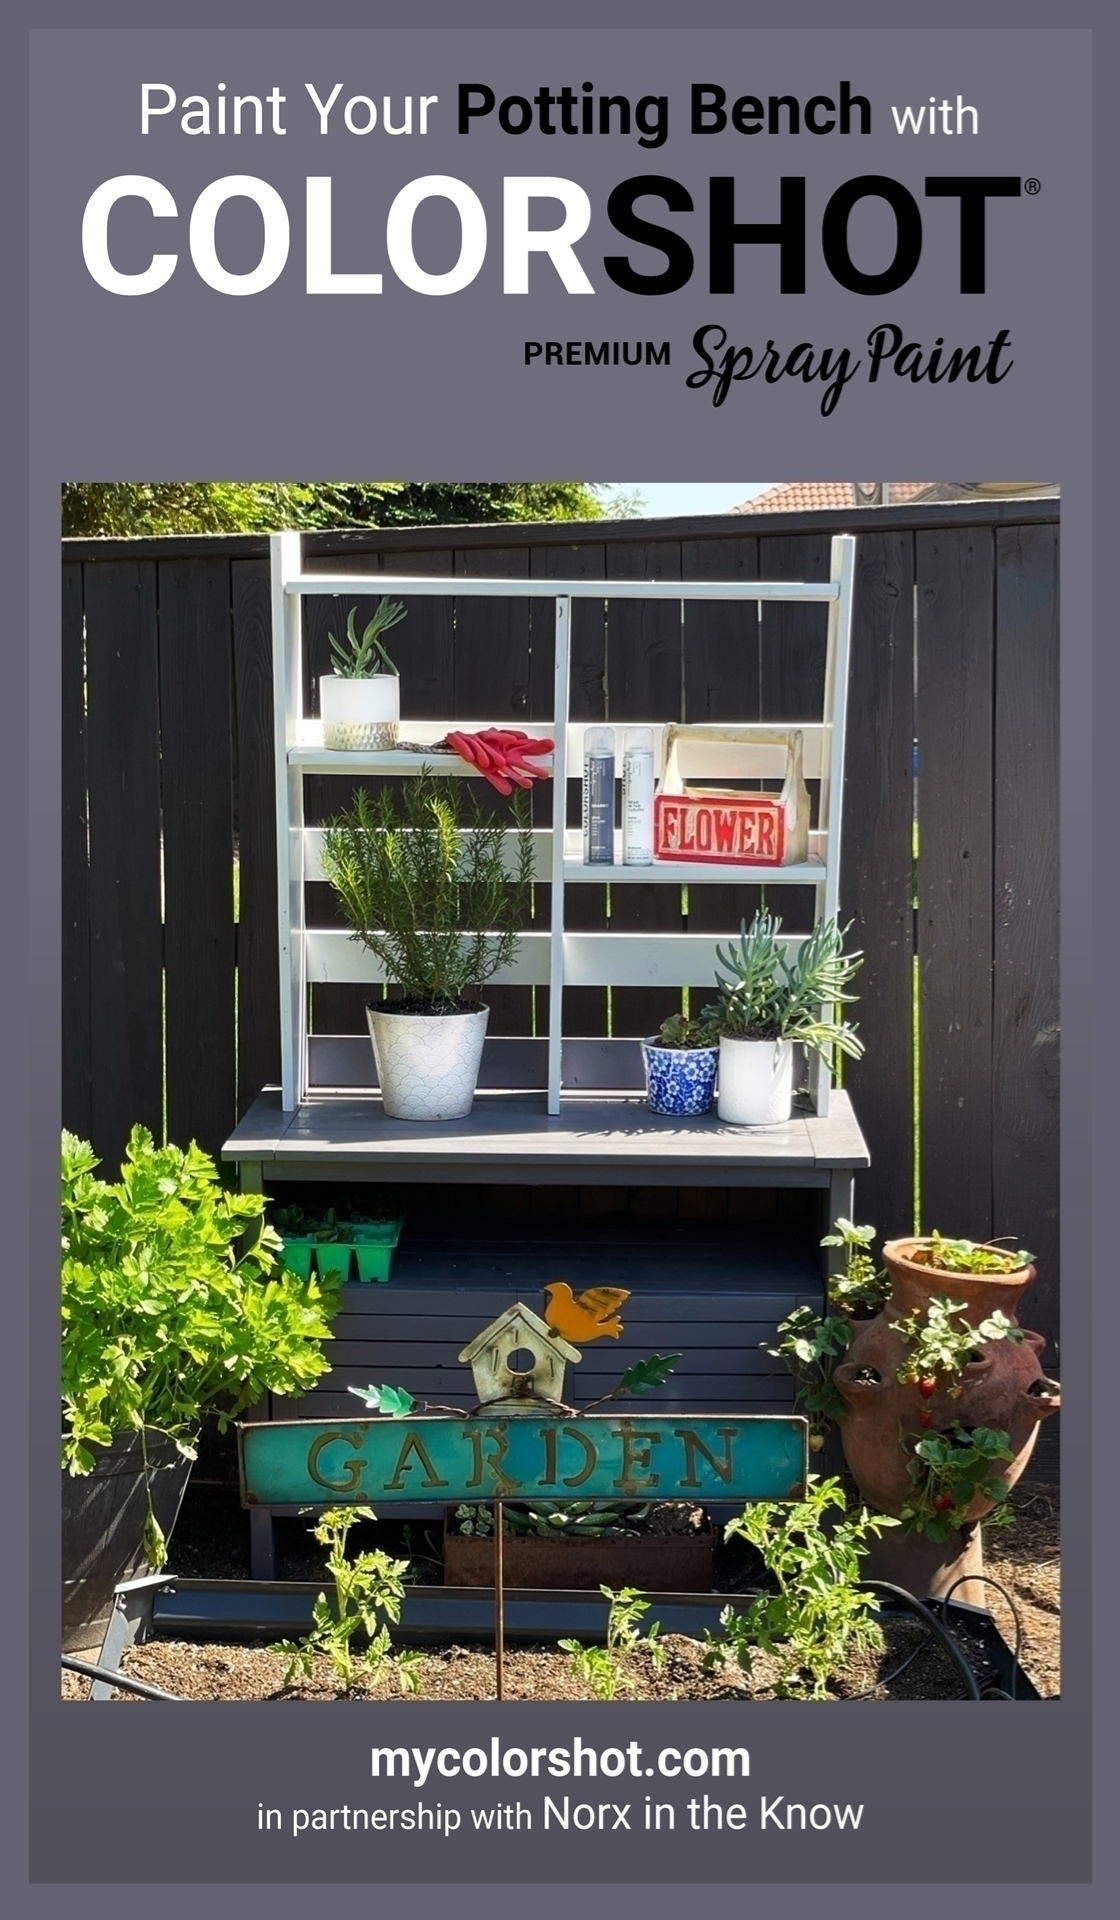 Customize Your Garden Potting Bench with Spray Paint